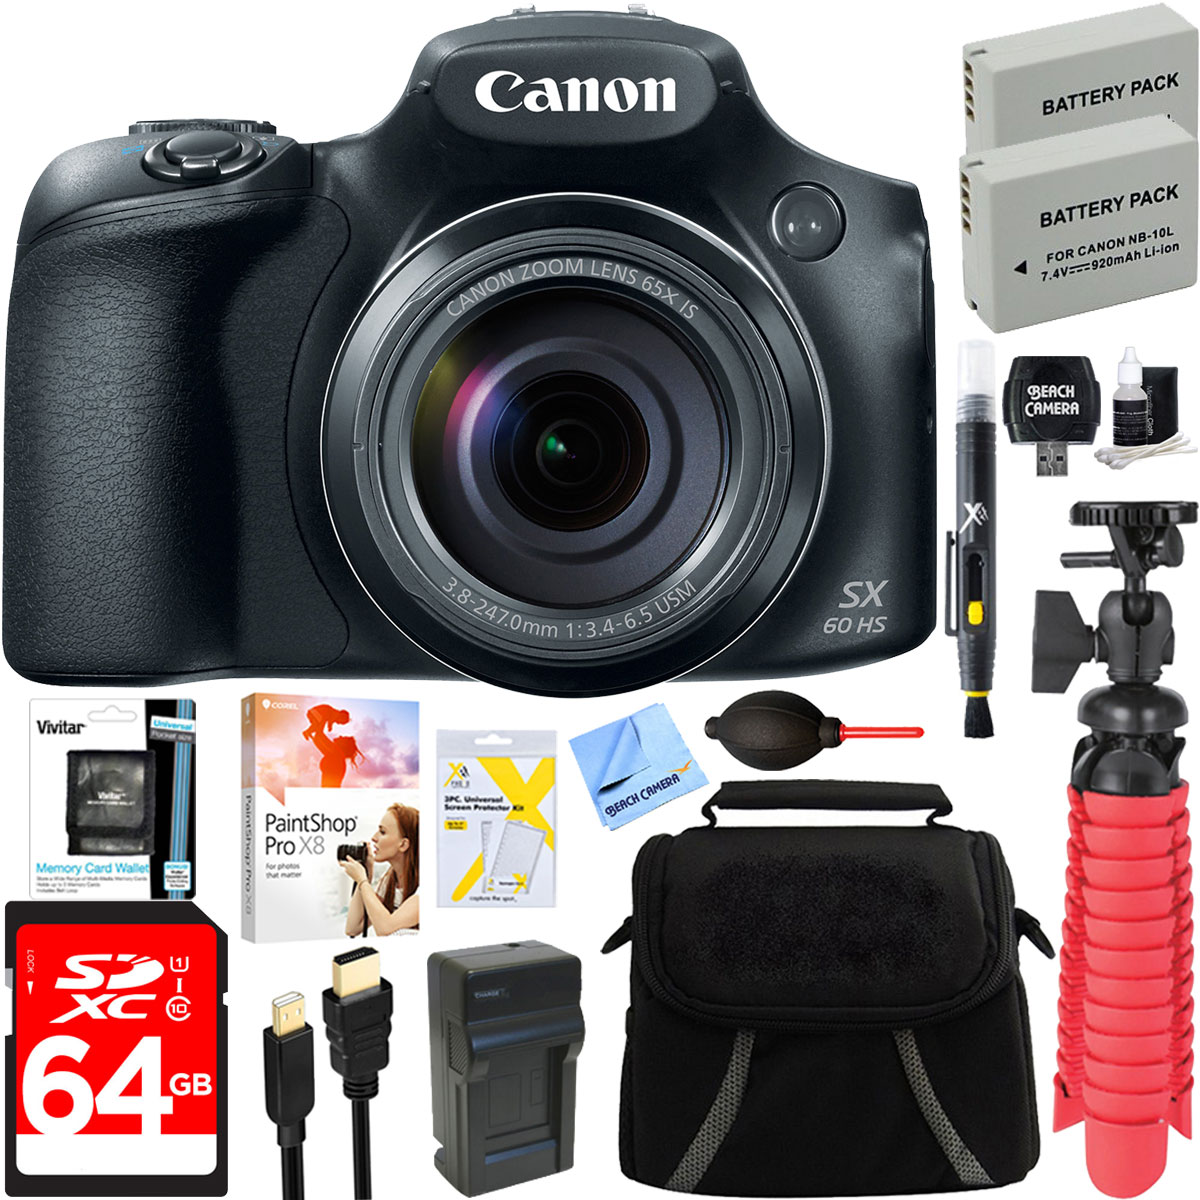 Canon PowerShot SX60 HS 16.1MP 65x Optical Zoom Wide Angl...